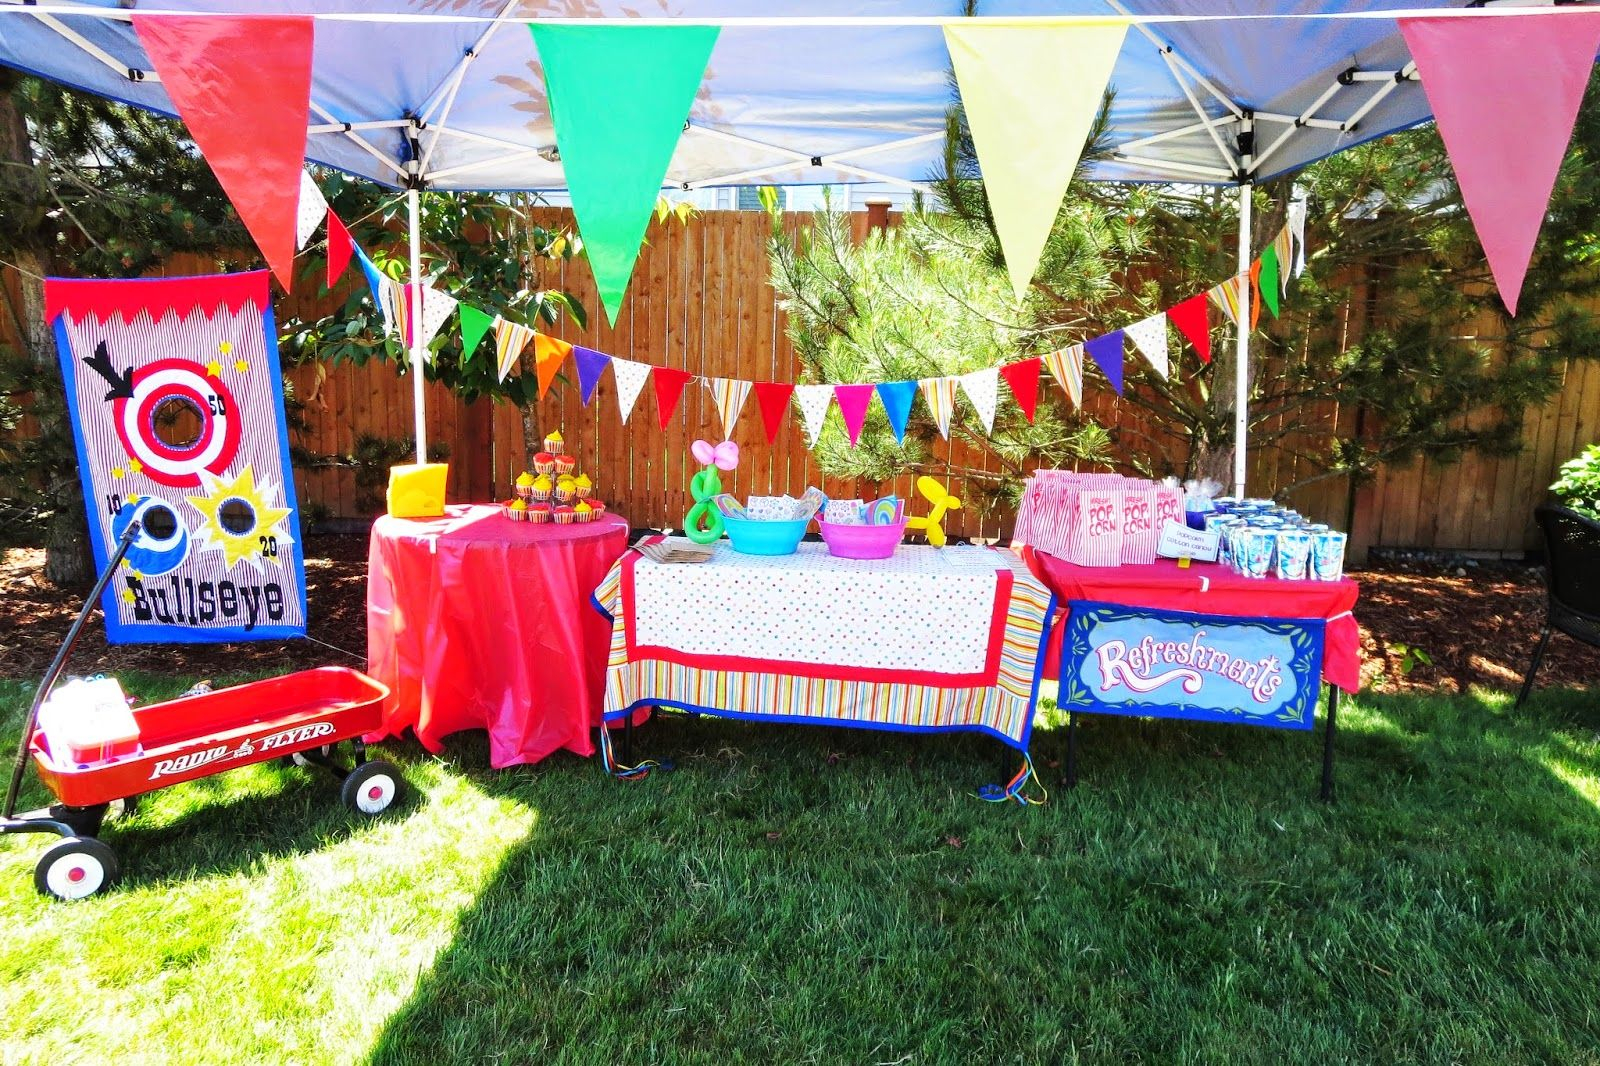 Glamorous Floor Plan Of A Backyard Carnival Party - Google Search | Kids intended for Backyard Carnival